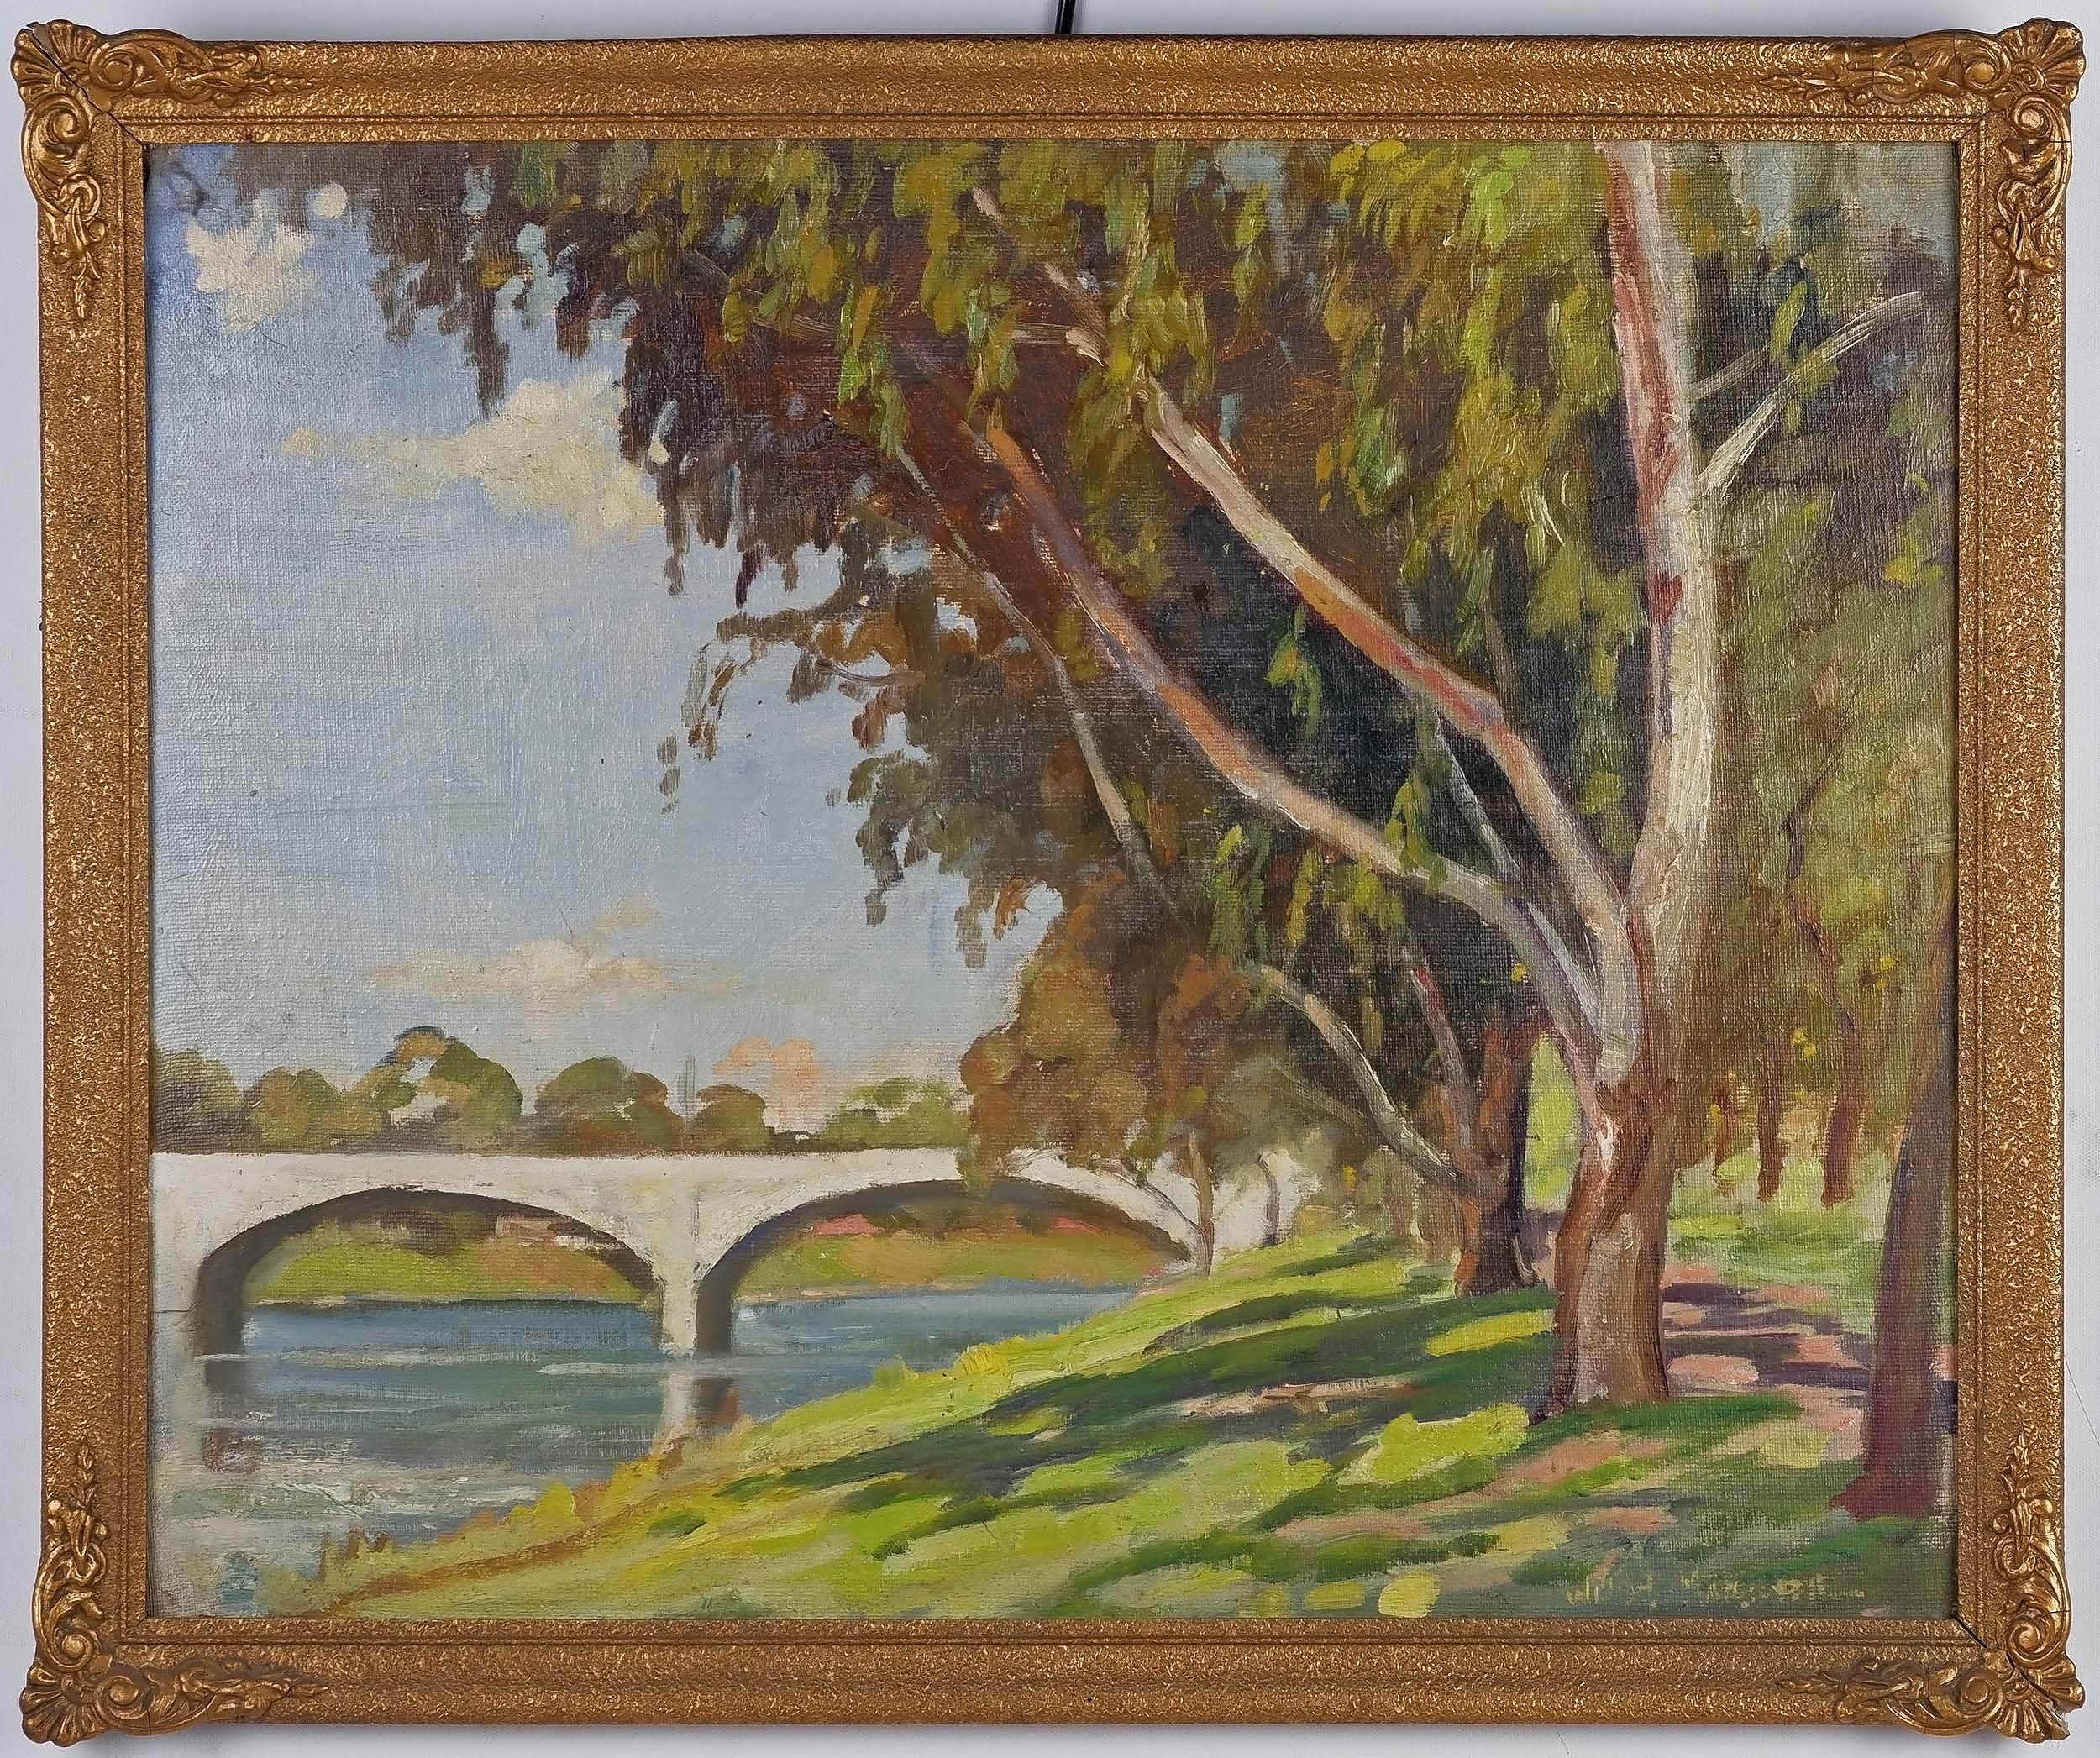 'William MacGuffie (Dates Unknown) The White Bridge - The Anderson St Bridge Over the Yarra, Oil on Canvas Board'